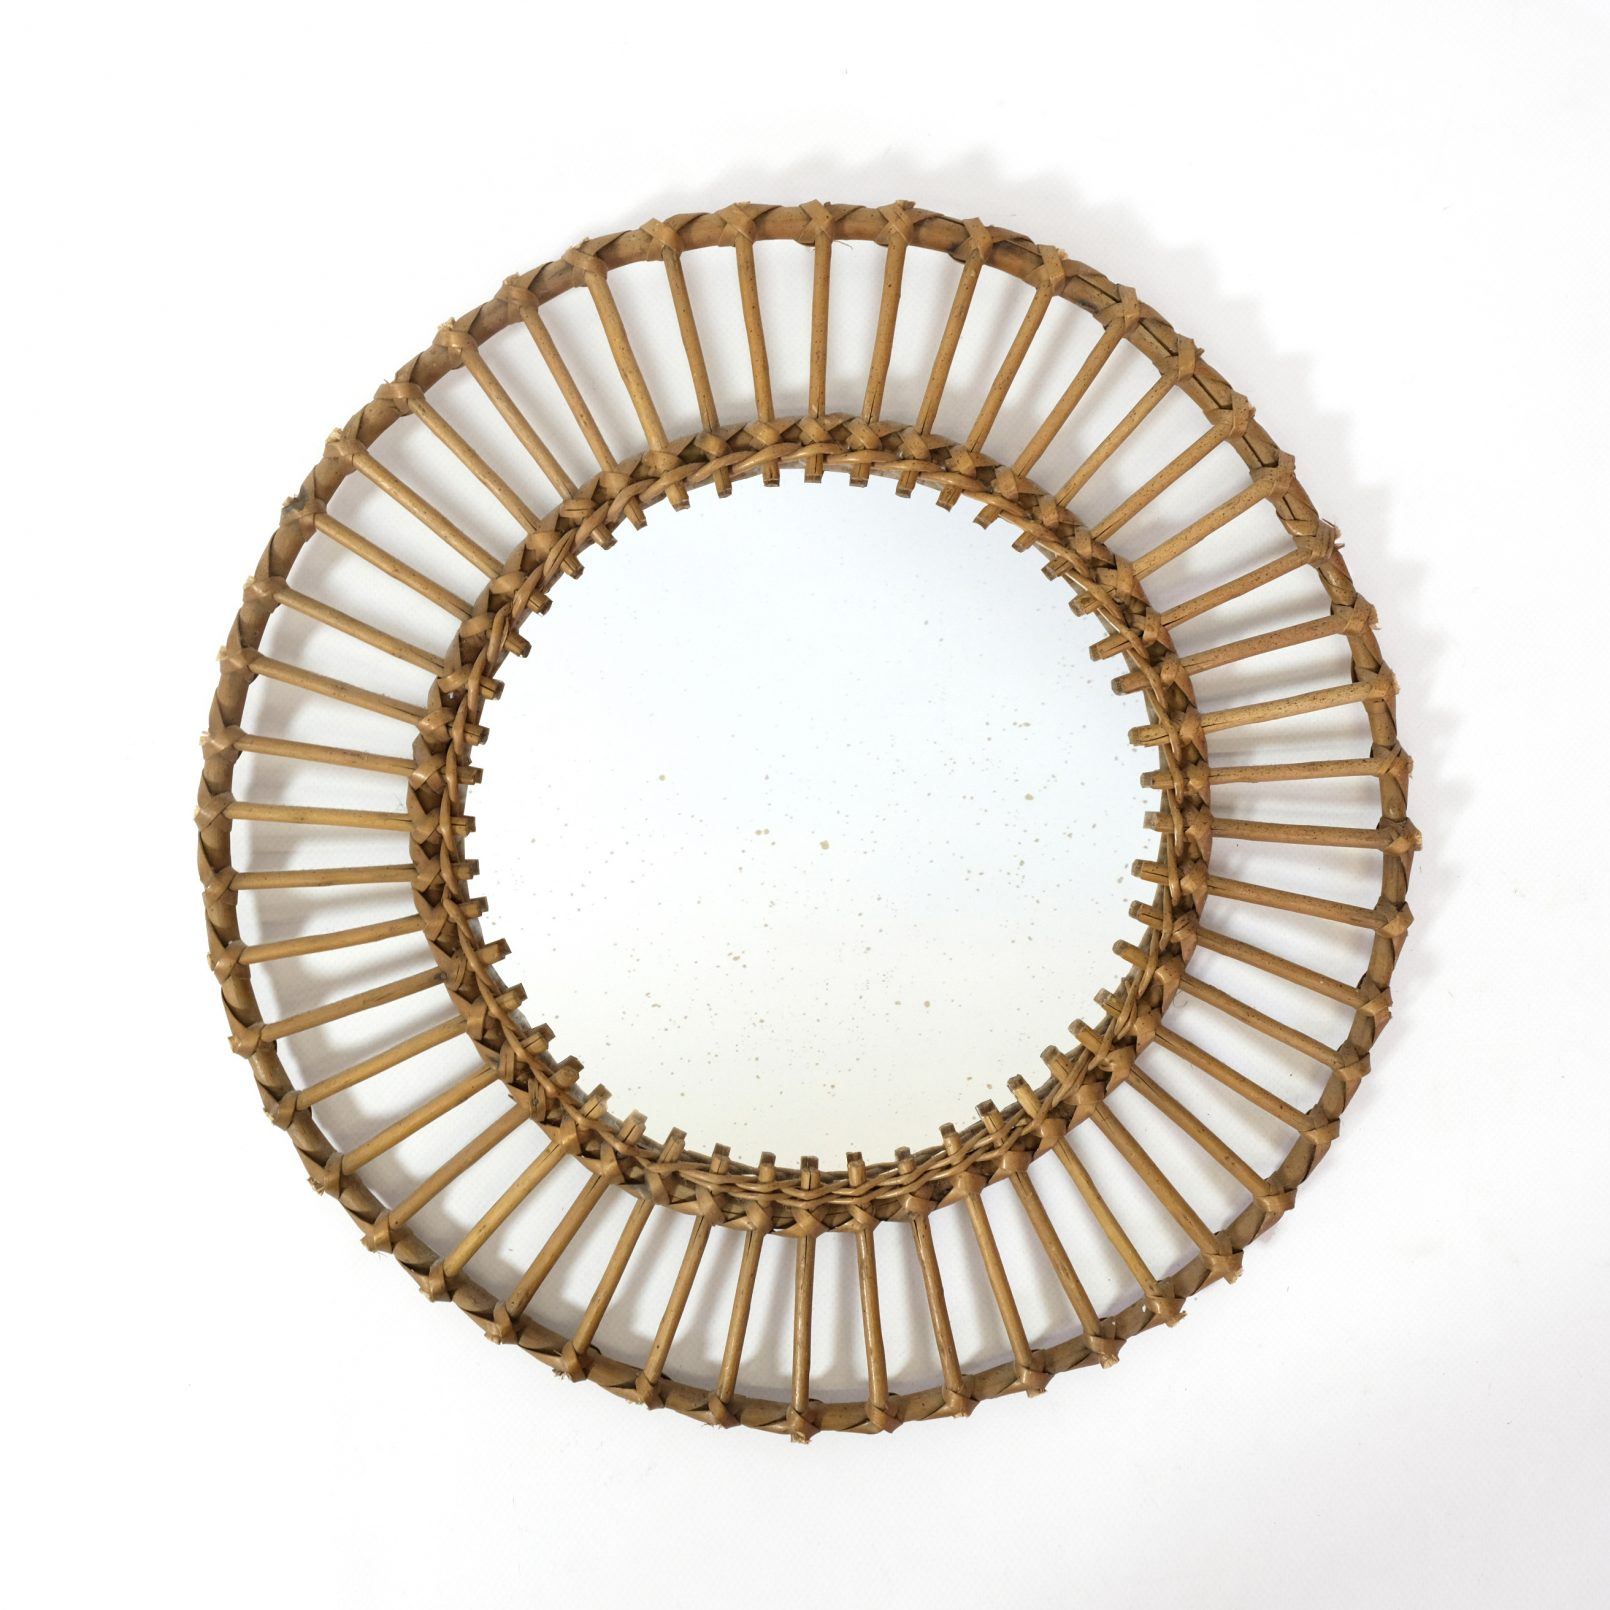 Vintage bamboo sun shaped mirror, 41cm.